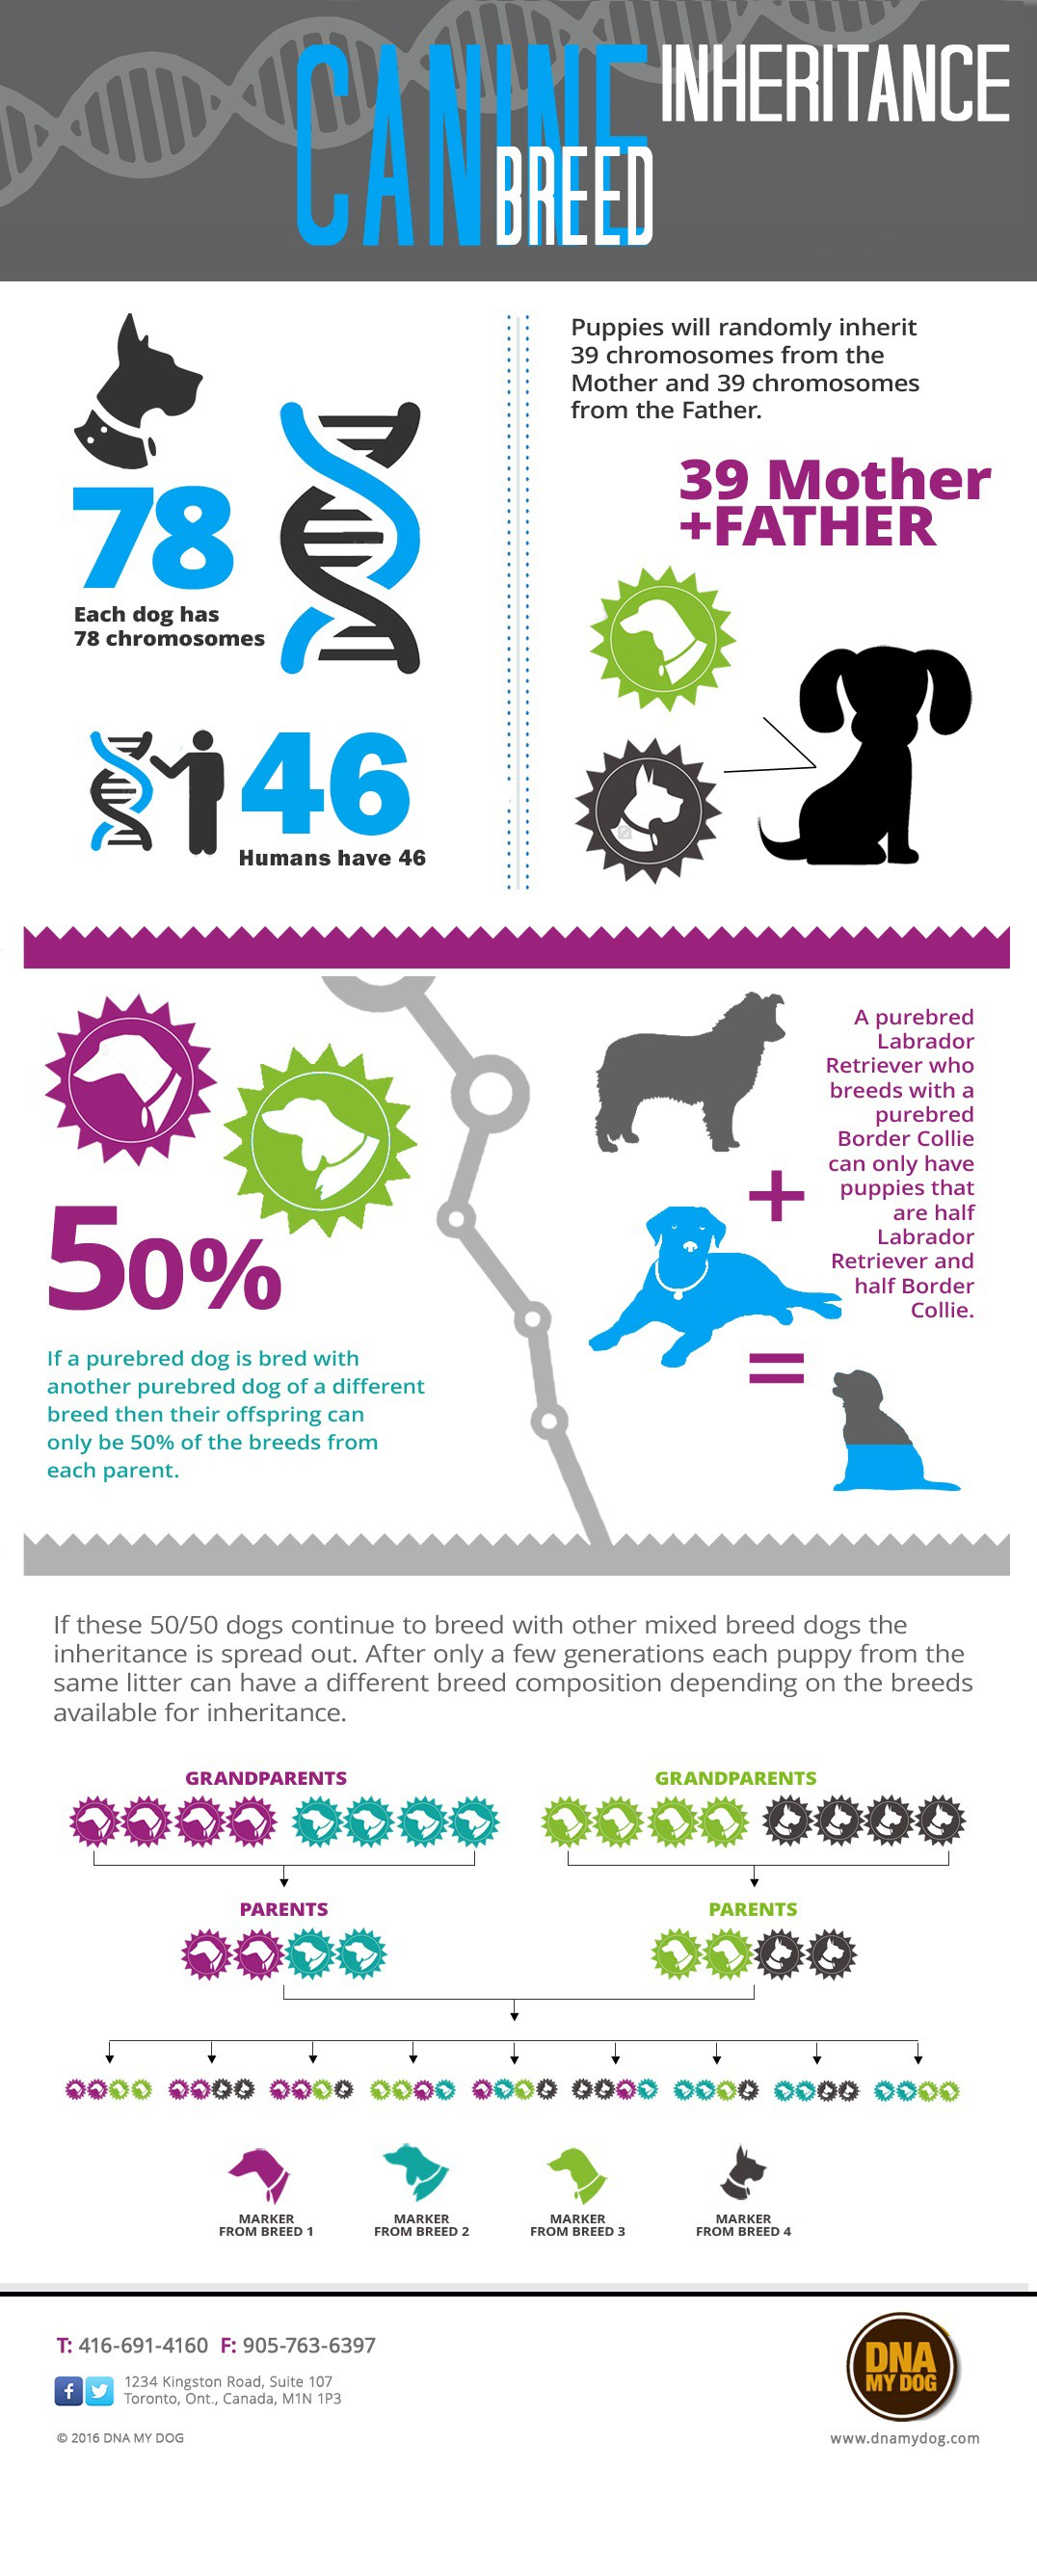 DNA My Dog: Canine DNA test Frequently Asked questions